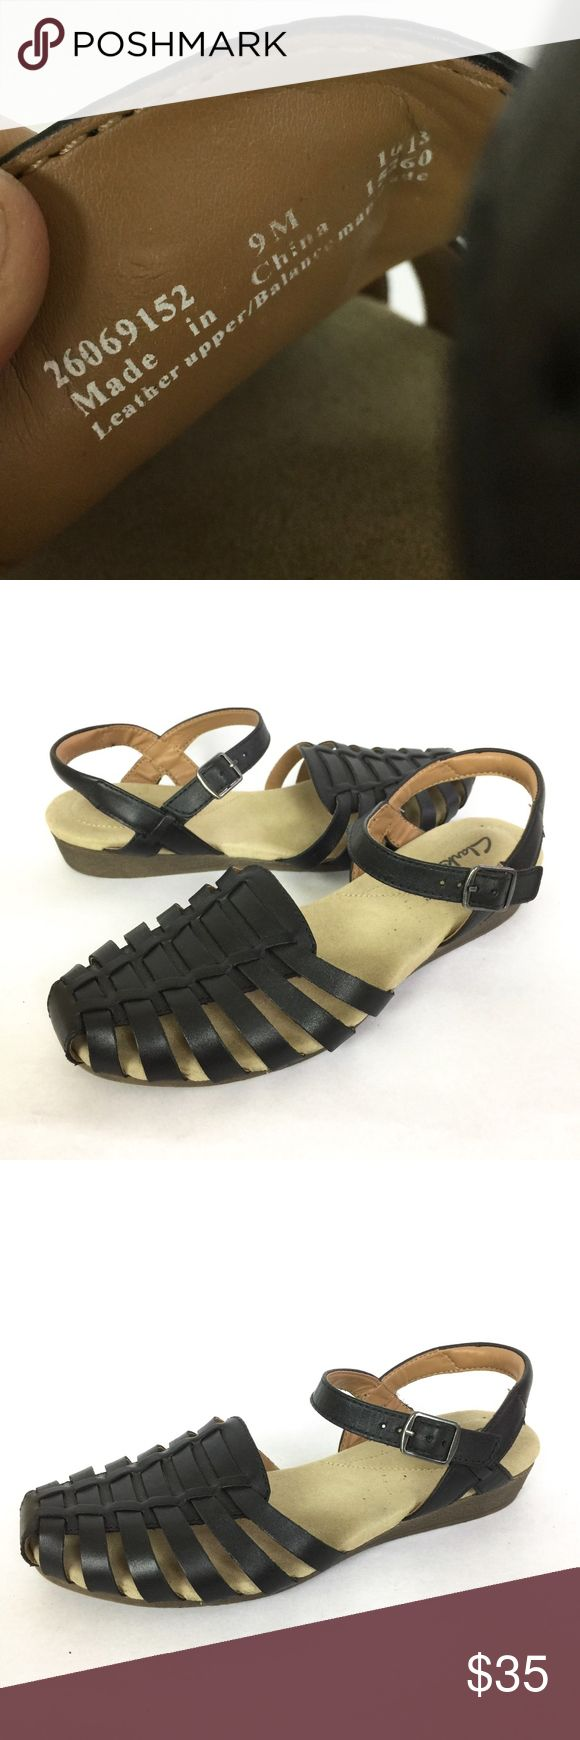 Clarks Sandal Size 9 Womens Fisher Man Sandals Clarks Sandal Size 9 Womens Fisher Man Sandals Black Leather Slingback Flats. In great condition. Does show wear on upper. View pictures for more details. Clarks Shoes Sandals